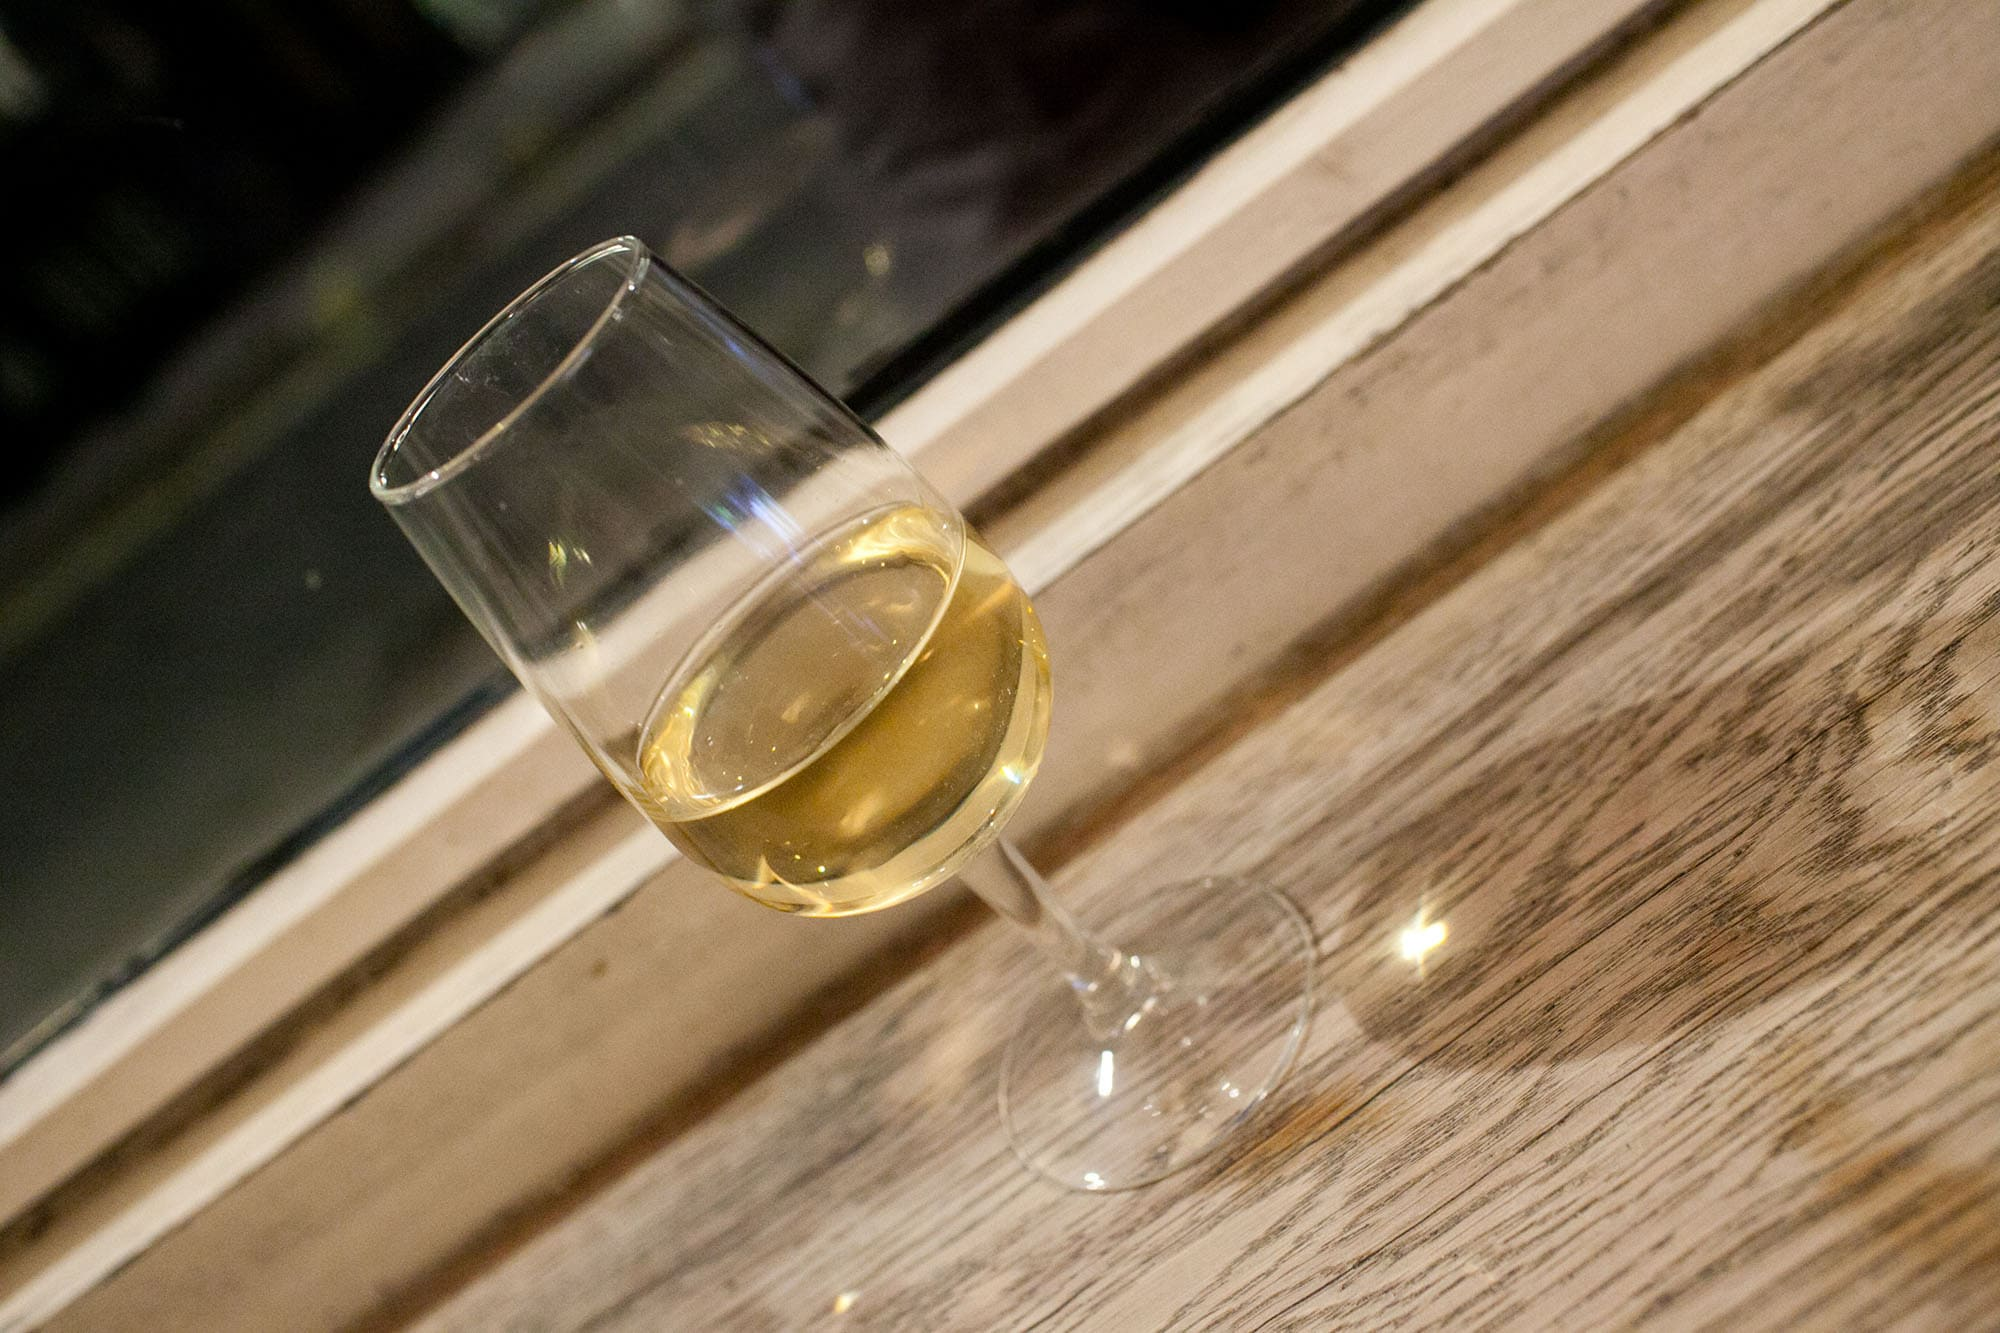 White wine at Fernandez & Wells in Soho, London, England